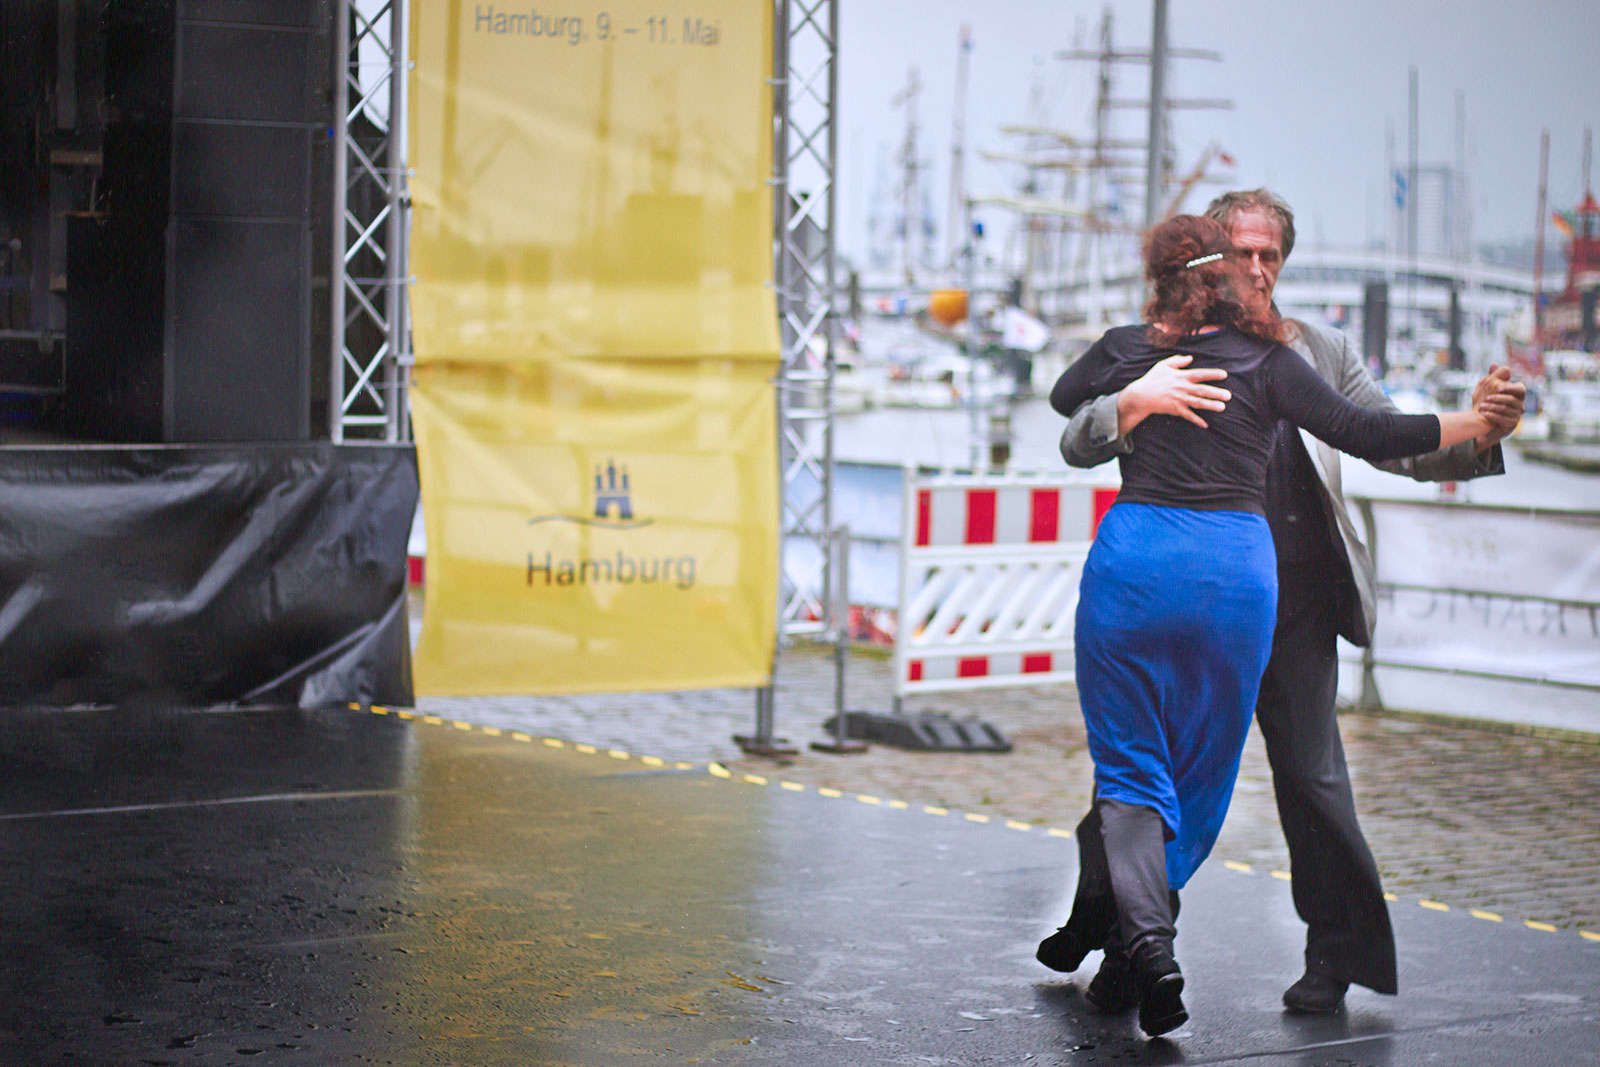 Dancing in the rain couple tango no matter what shietwetter hafenfest hamburg